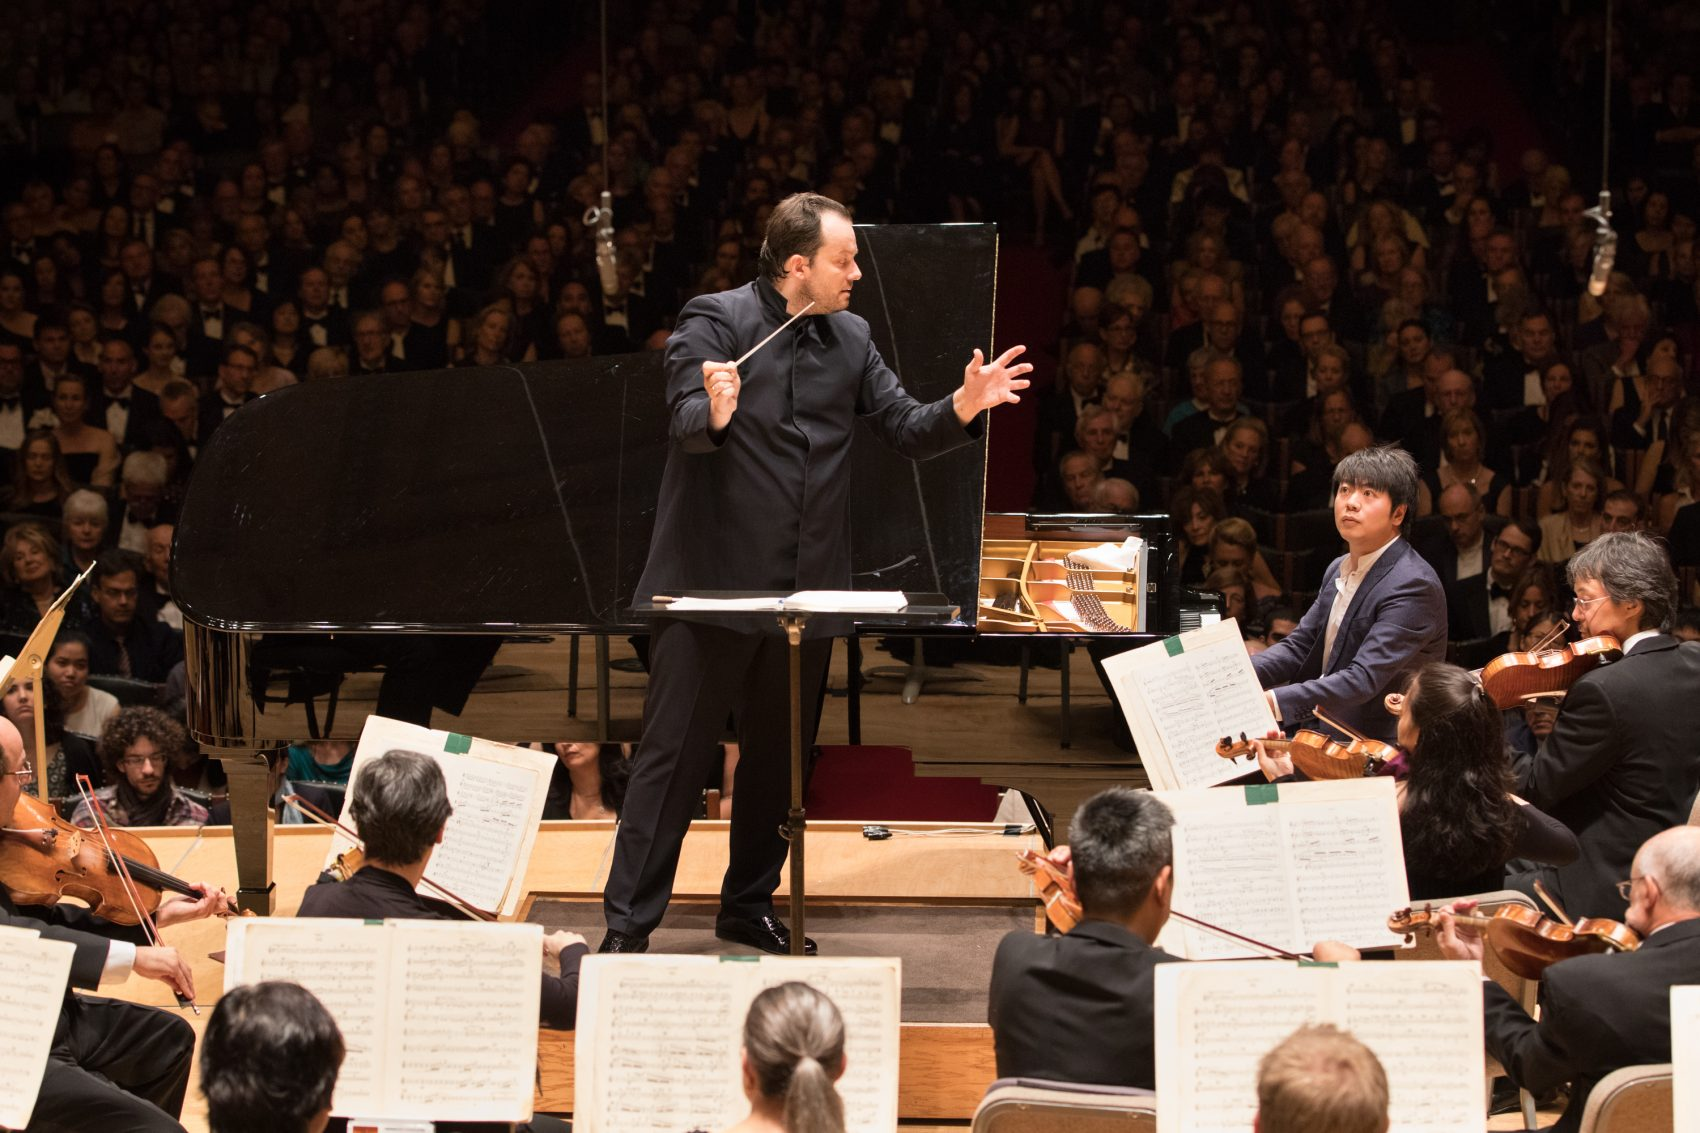 Andris Nelsons leads the Boston Symphony Orchestra on opening night. (Courtesy Michael Blanchard)